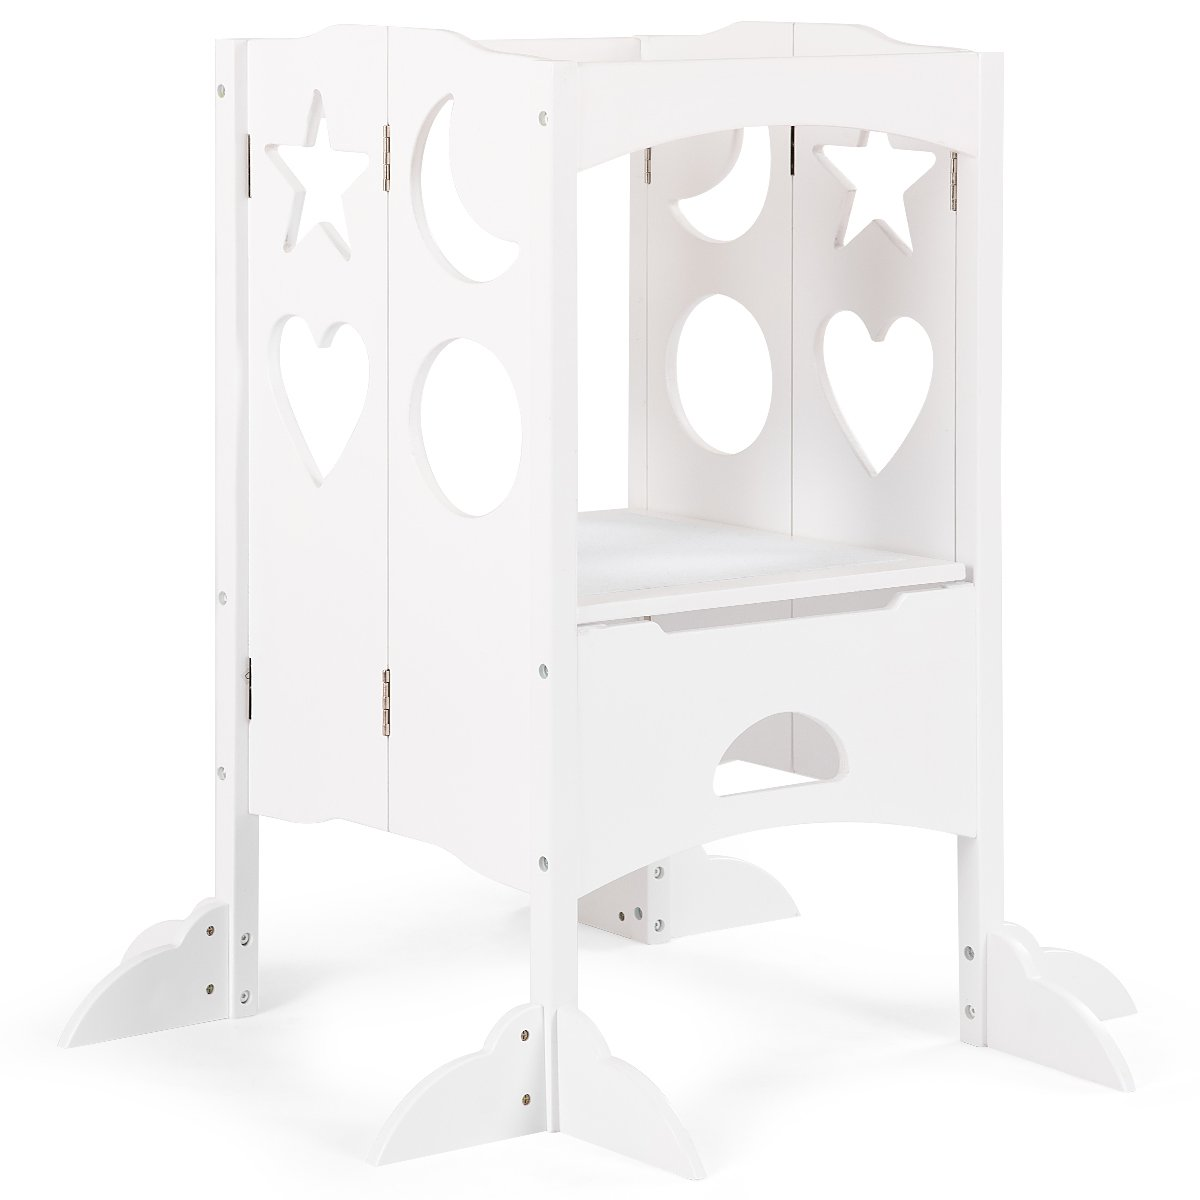 Costzon Kids Step Stool, Folding Safety Learning Stool with Climbing Holes & Non-Slippery Blanket, Perfect for Little Ones in Kitchen (White)